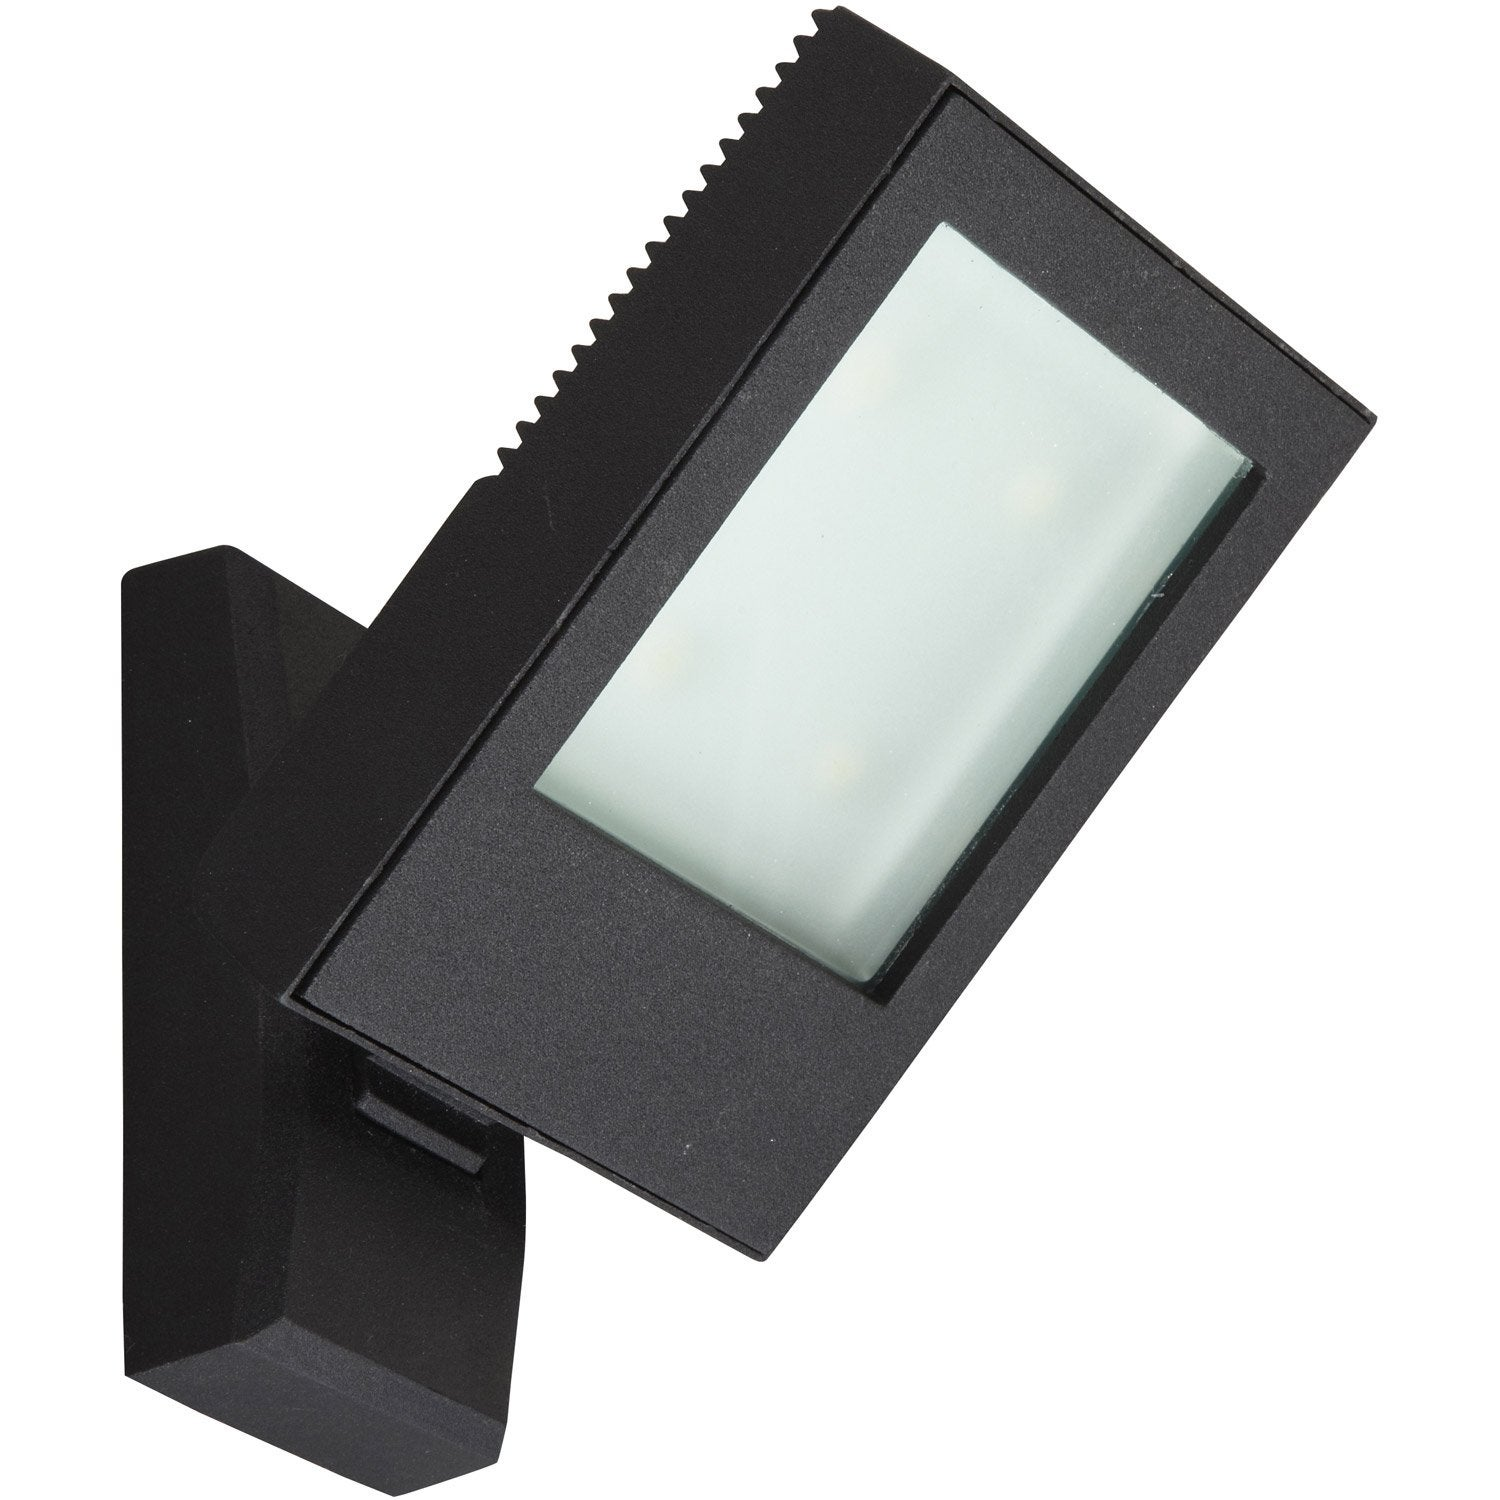 Applique montante ext rieure jade led int gr e noir for Applique murale exterieur orientable